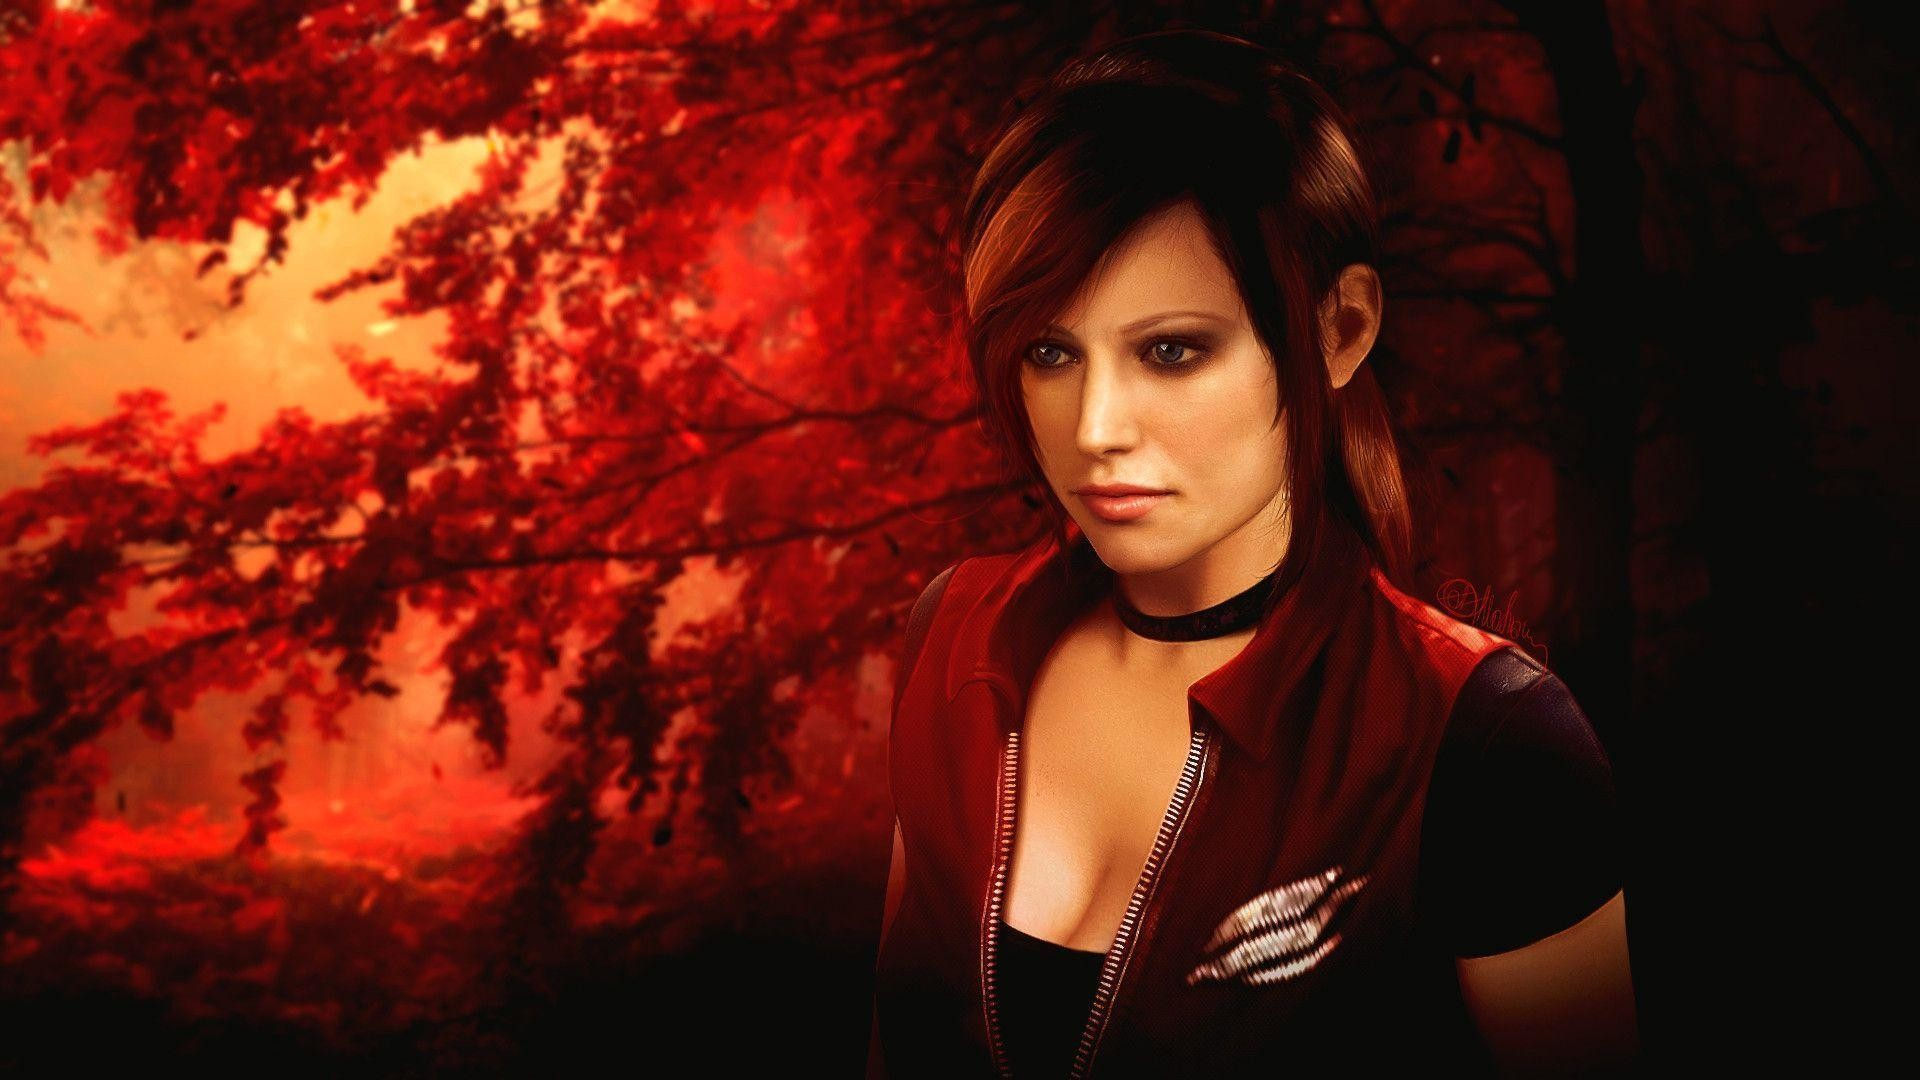 Res: 1920x1080, Claire Redfield Wallpaper